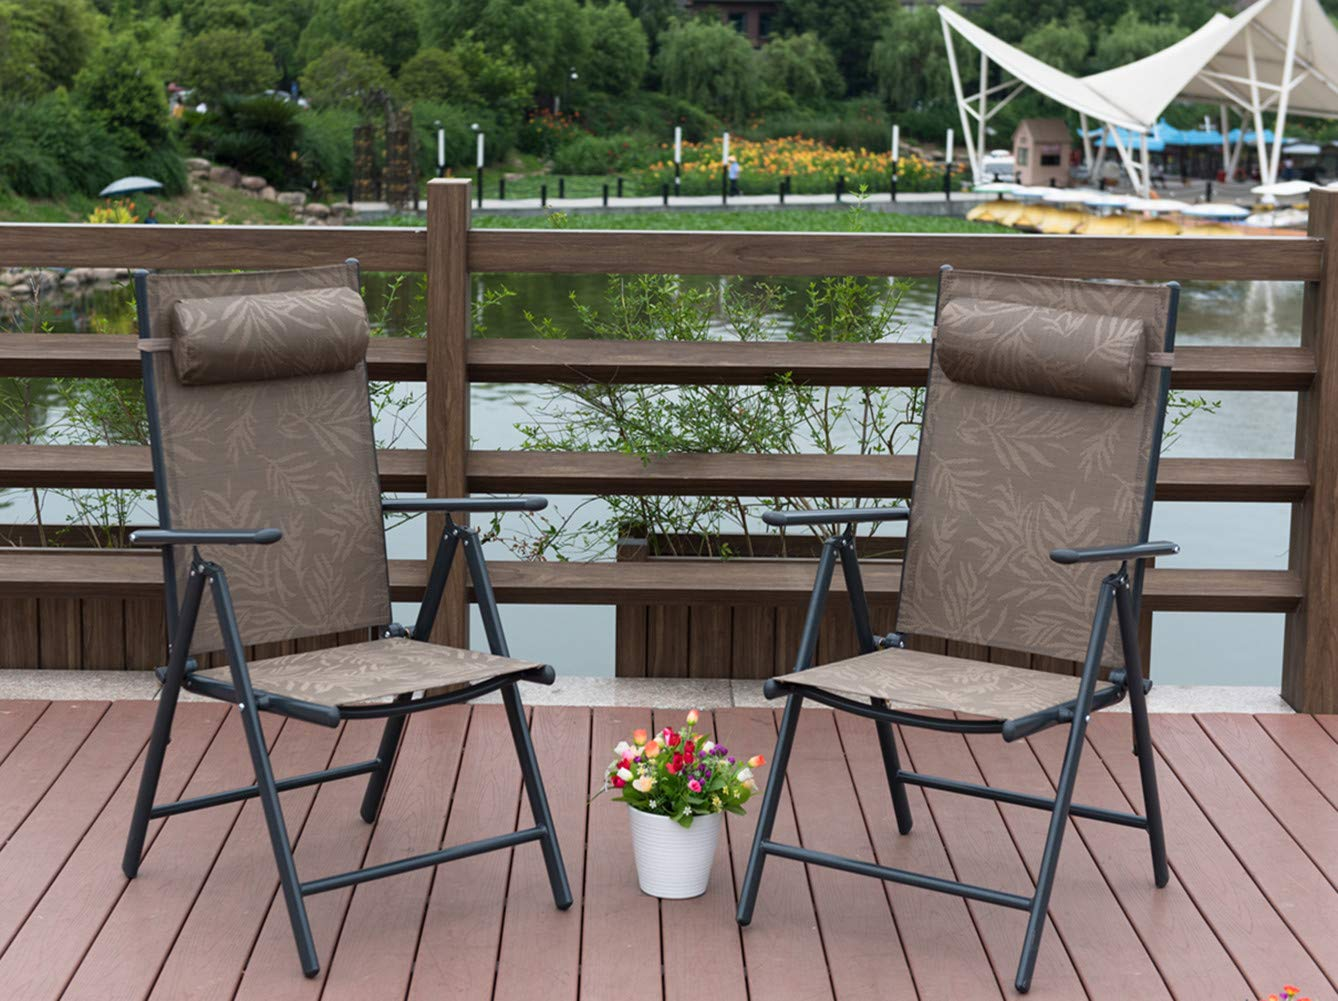 PatioPost Outdoor Adjustable Folding Recliner Aluminum Patio Sling Chairs with 7 Stalls, Set of 2 - Jacquard by PatioPost (Image #6)